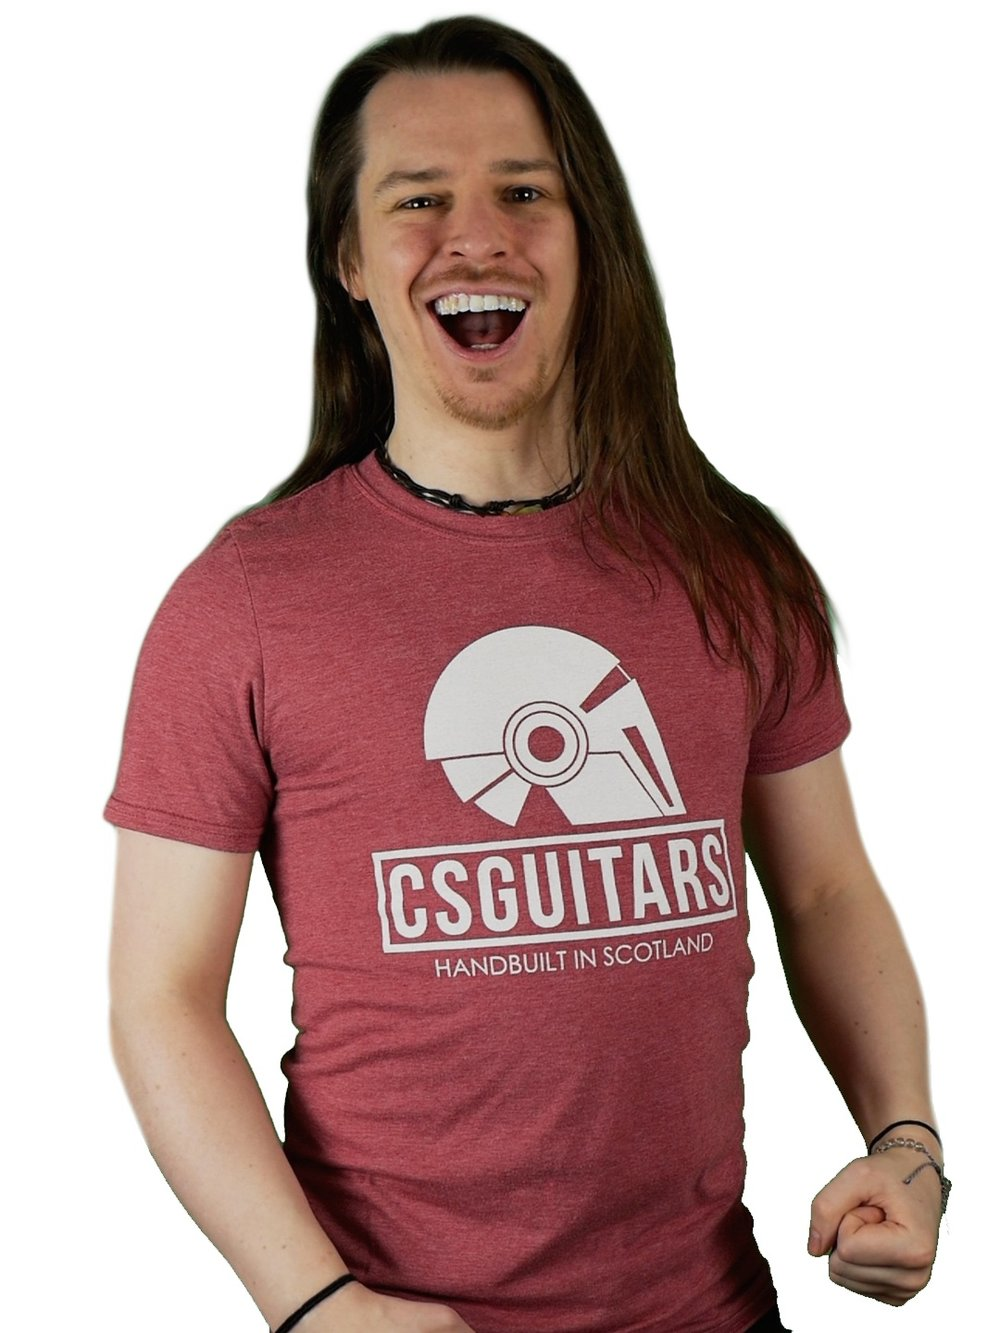 Buy a T-Shirt! - Grabbing yourself a stylish CSGuitars T-Shirt, Beanie Hat, or Pin Badge directly supports CSGuitars while also showing to the world your commitment to the brand. This option allows you to make a contribution and help spread the word. It's the perfect combination